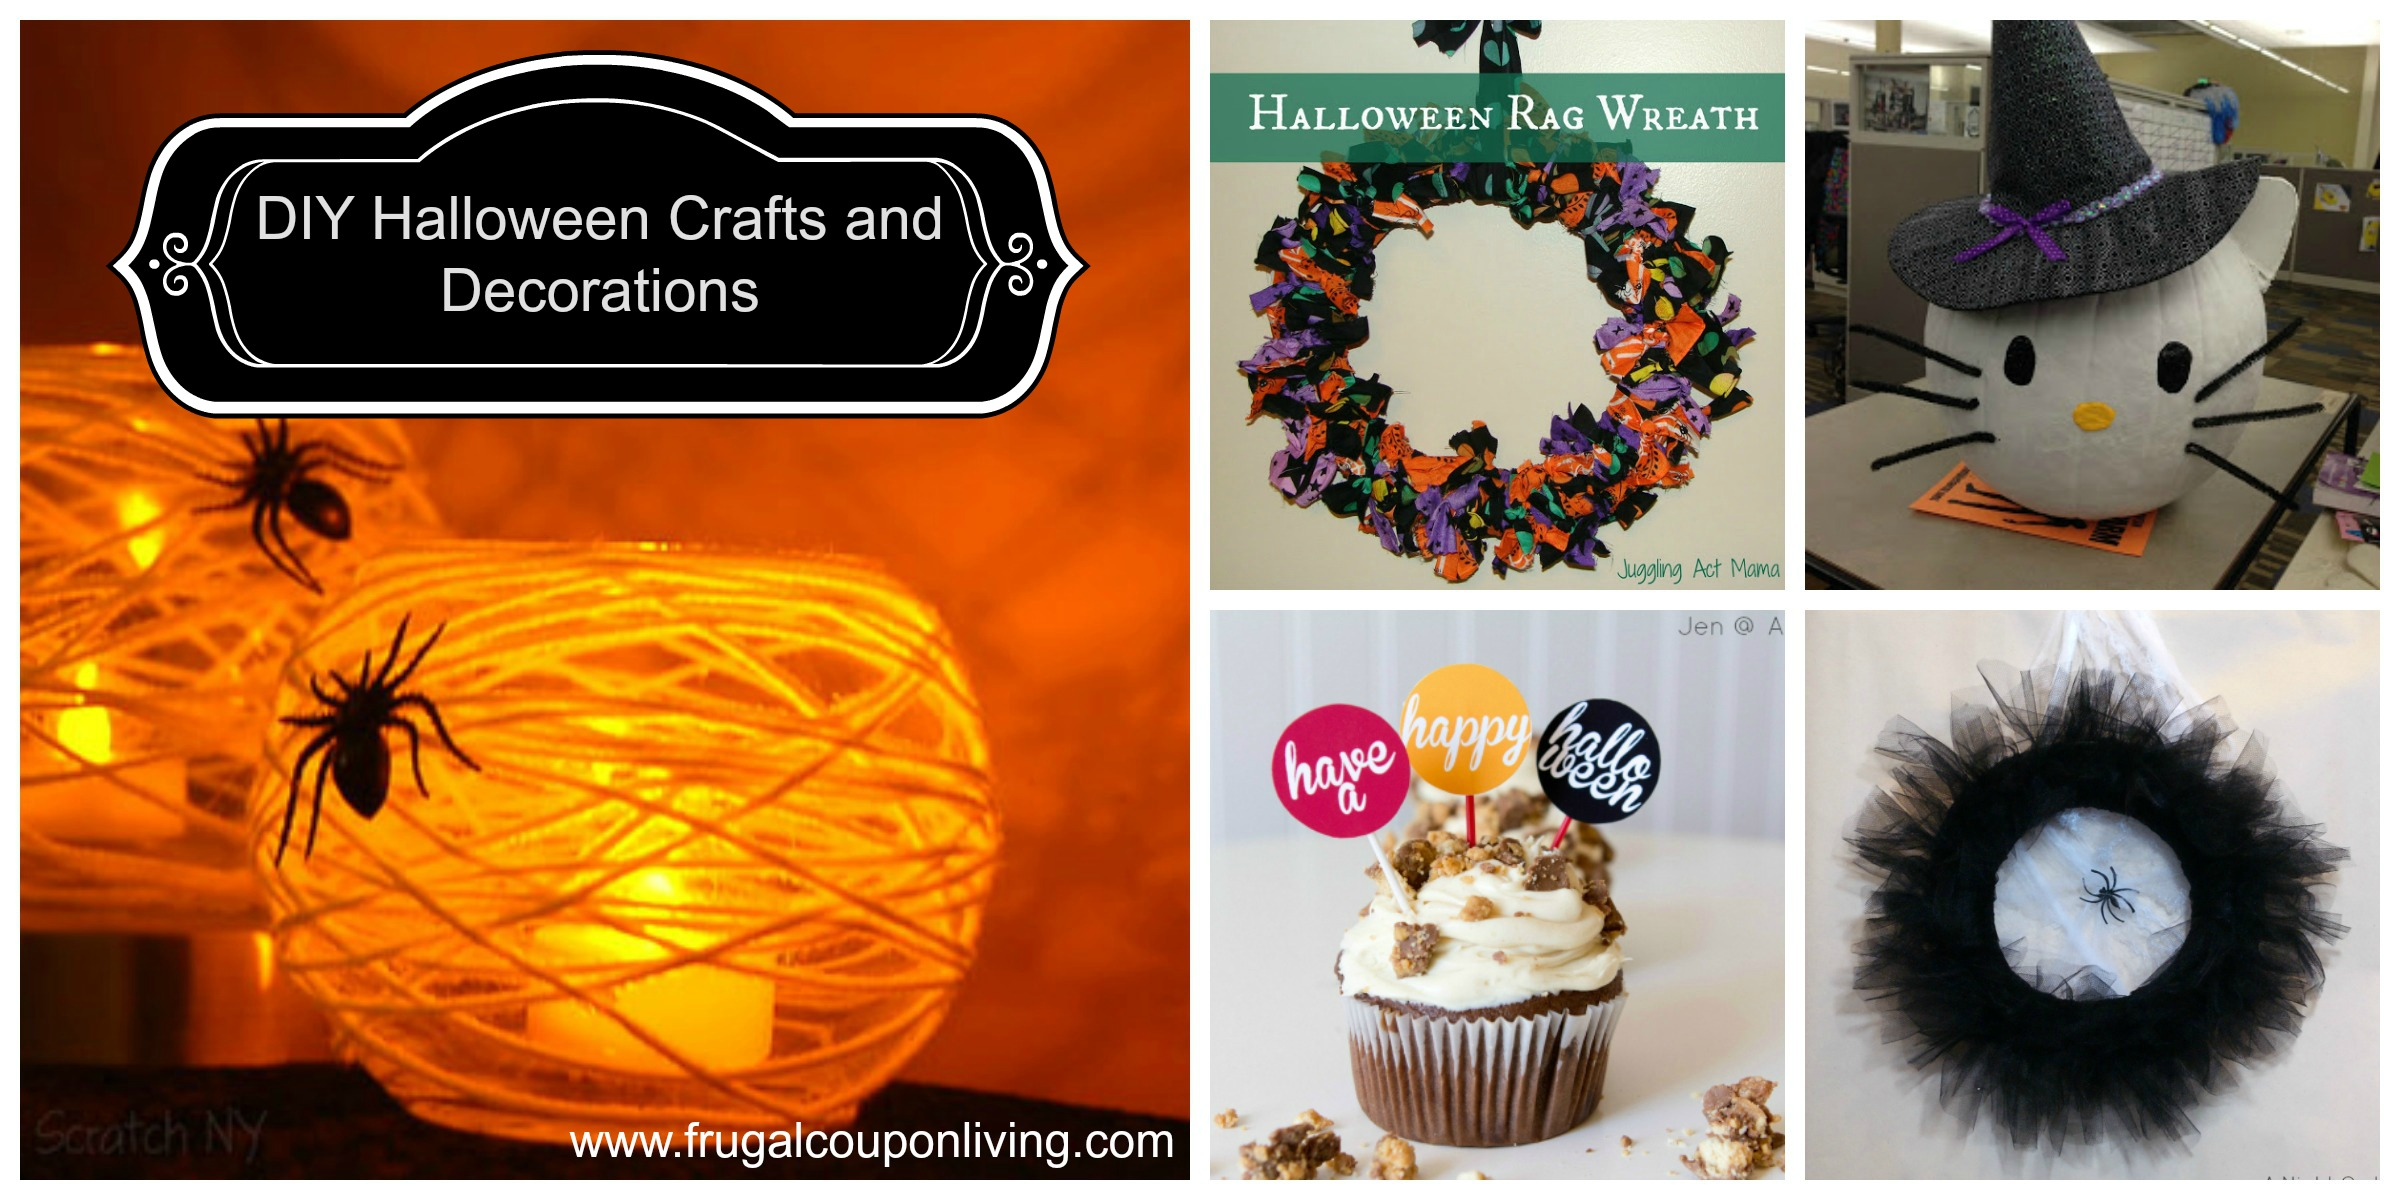 diy halloween crafts and decorations frugal coupon livingjpg - Halloween Decoration Crafts